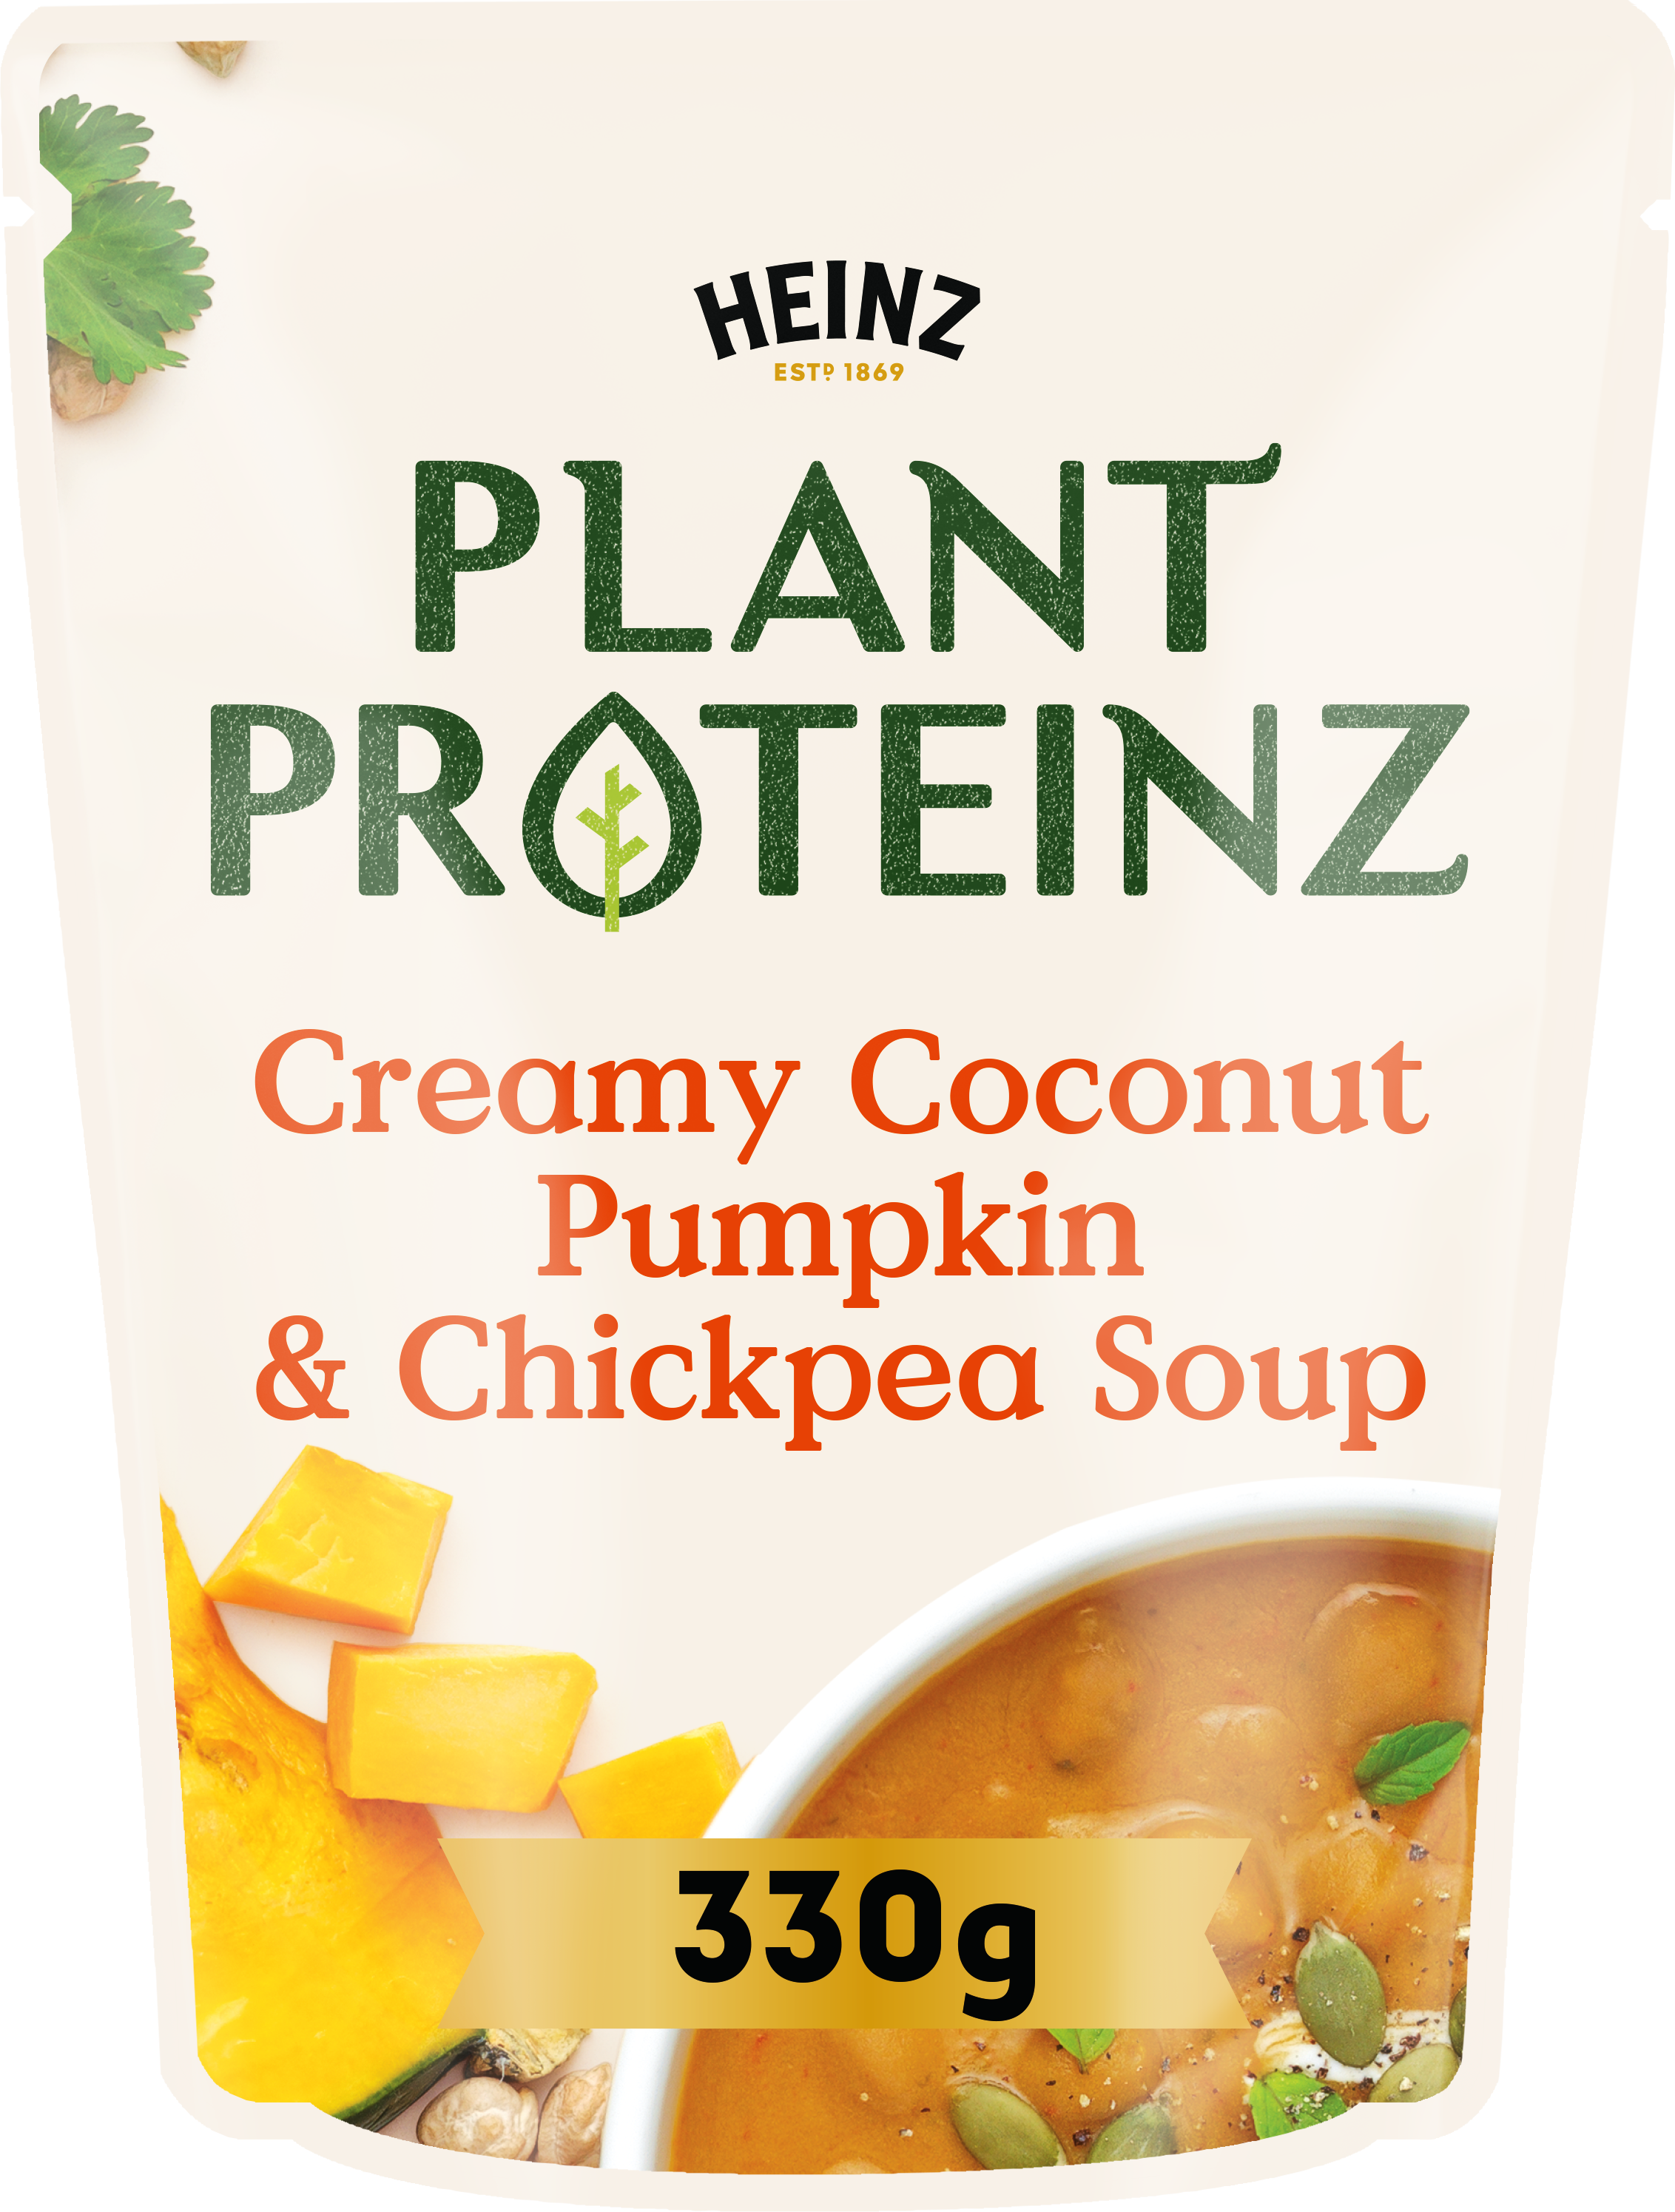 Photograph of 1 x 330g Heinz® Plant Proteinz Creamy Coconut, Pumpkin & Chickpea Soup product